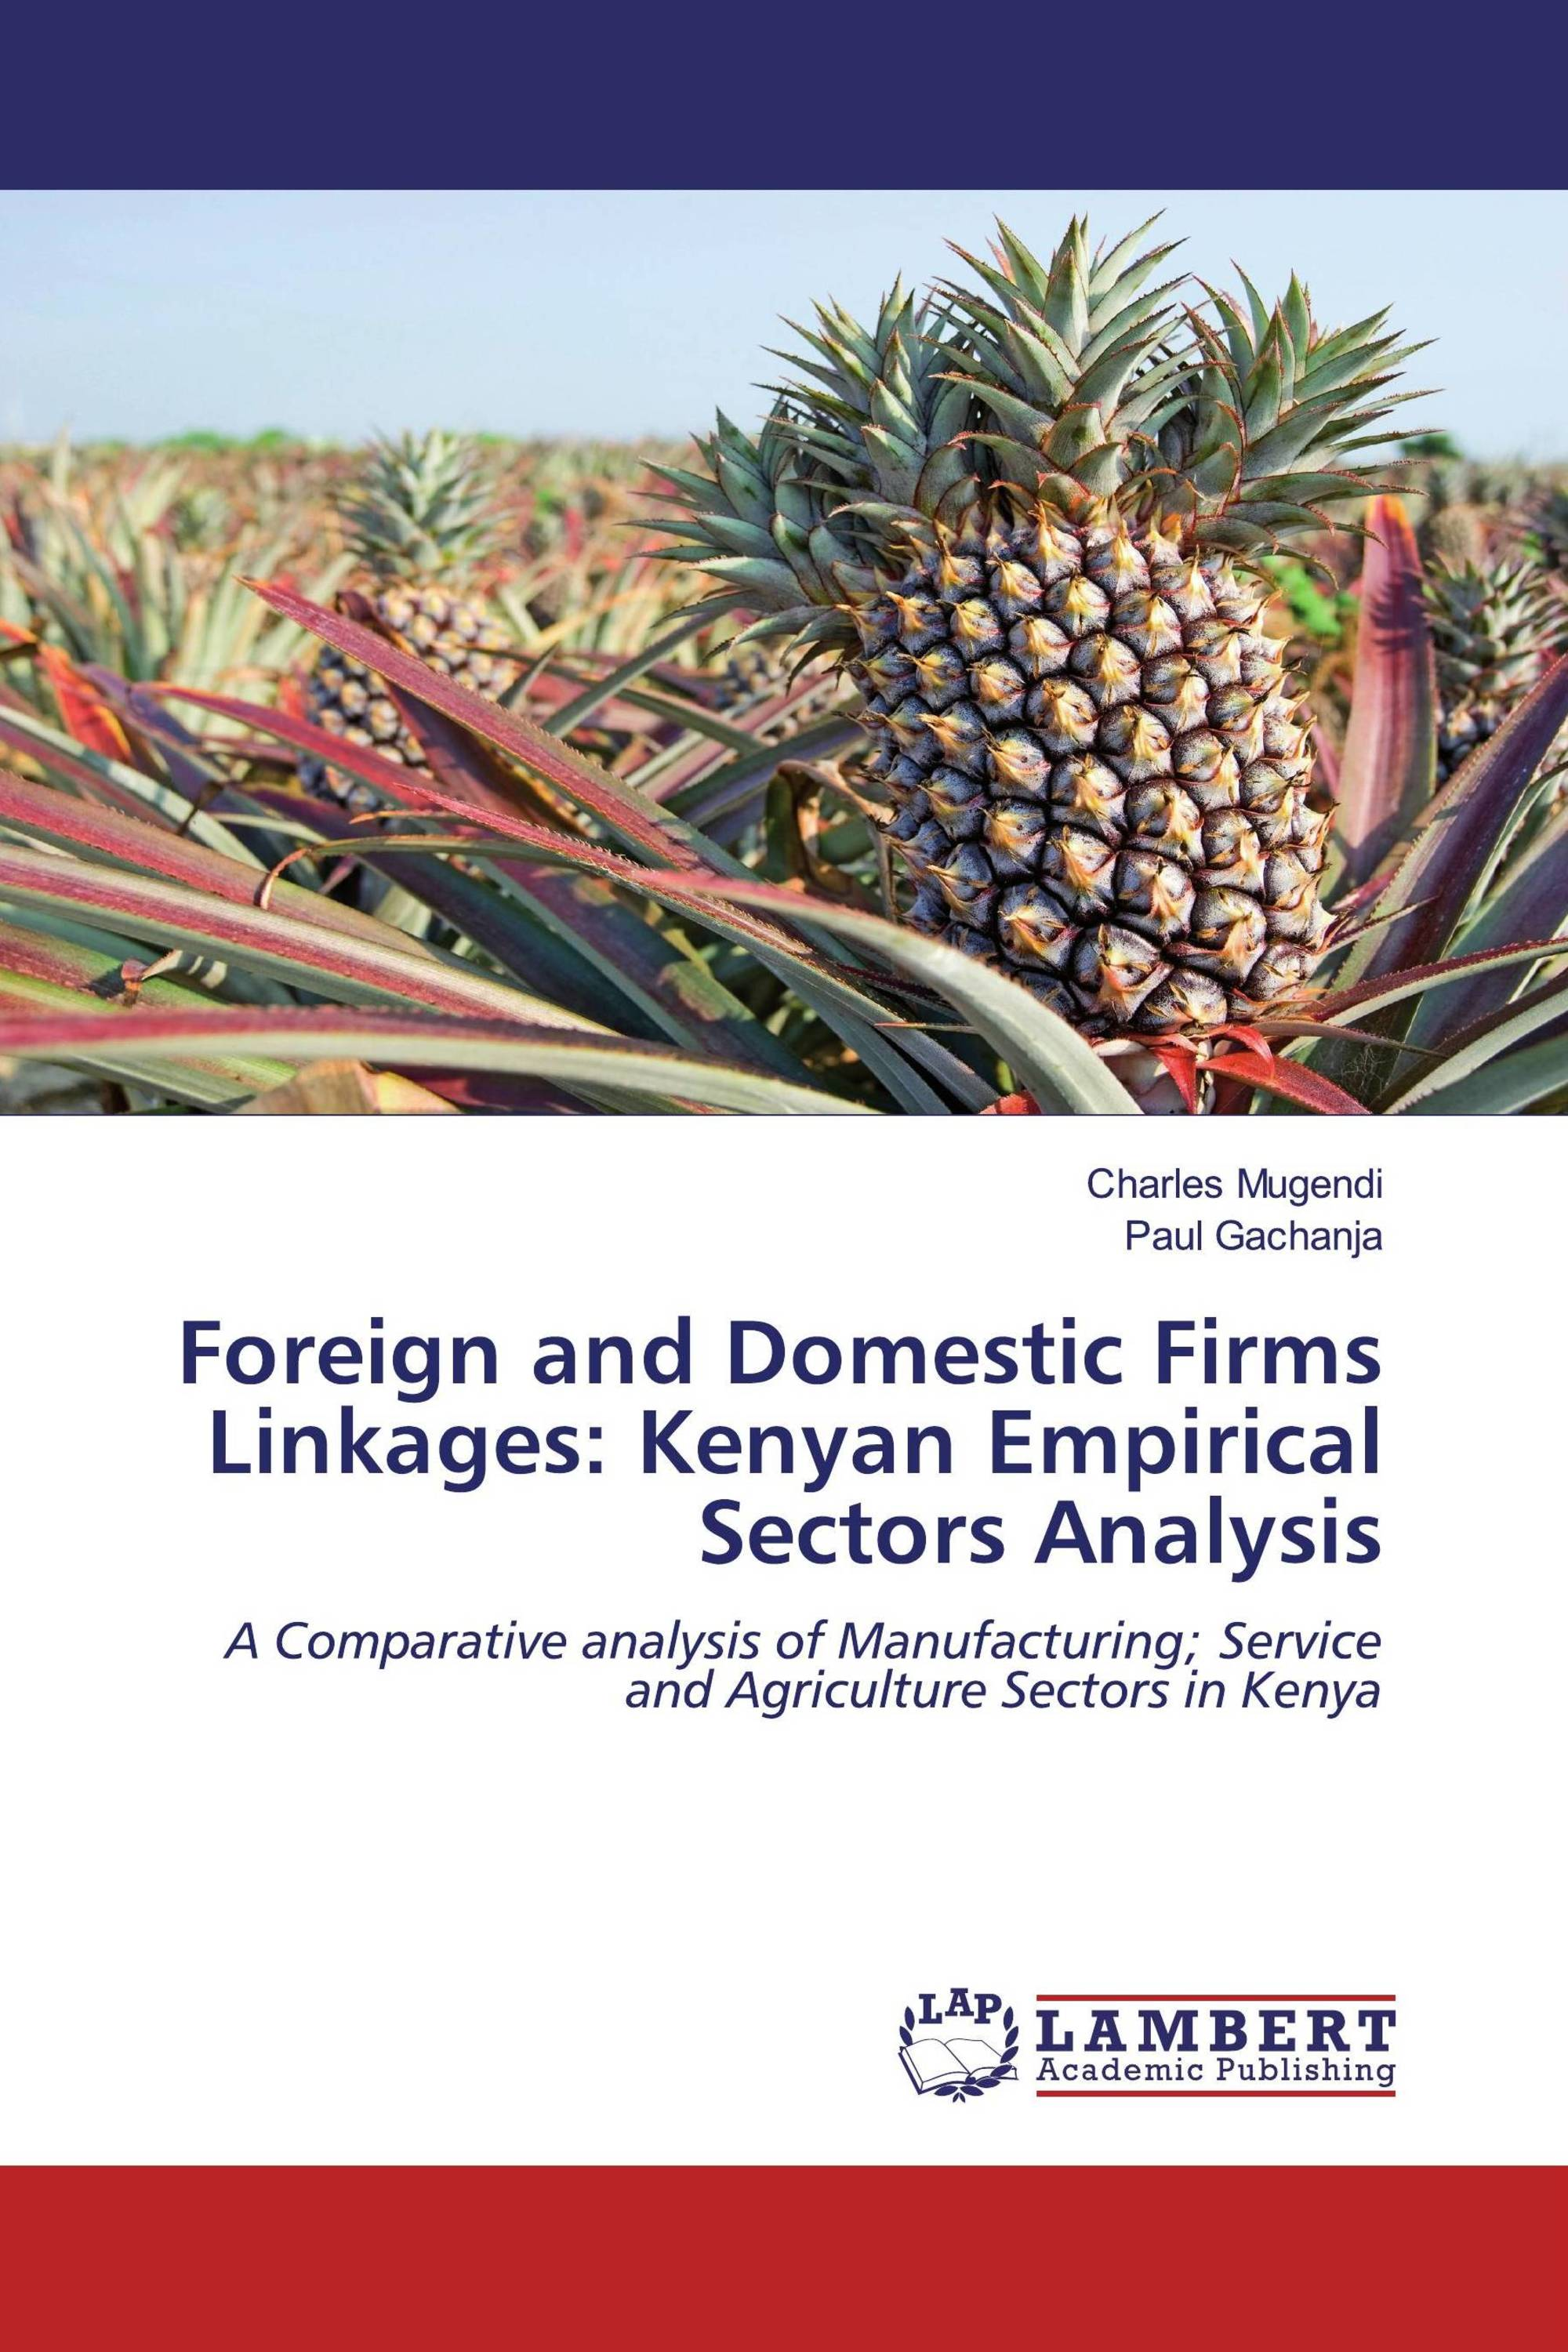 Foreign and Domestic Firms Linkages: Kenyan Empirical Sectors Analysis